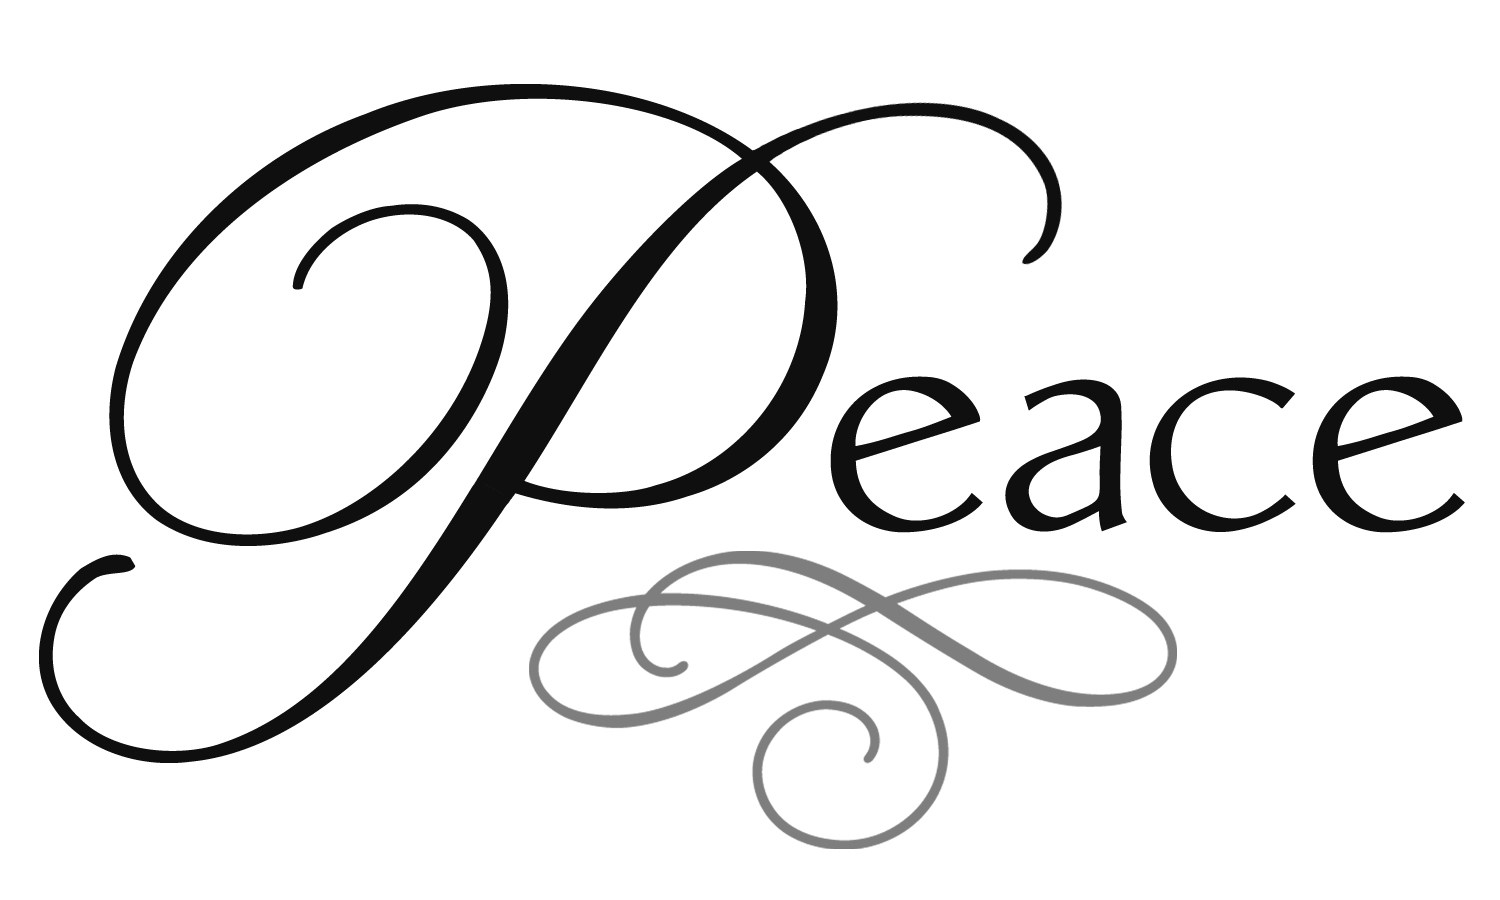 Prince of peace clipart 5 » Clipart Portal.